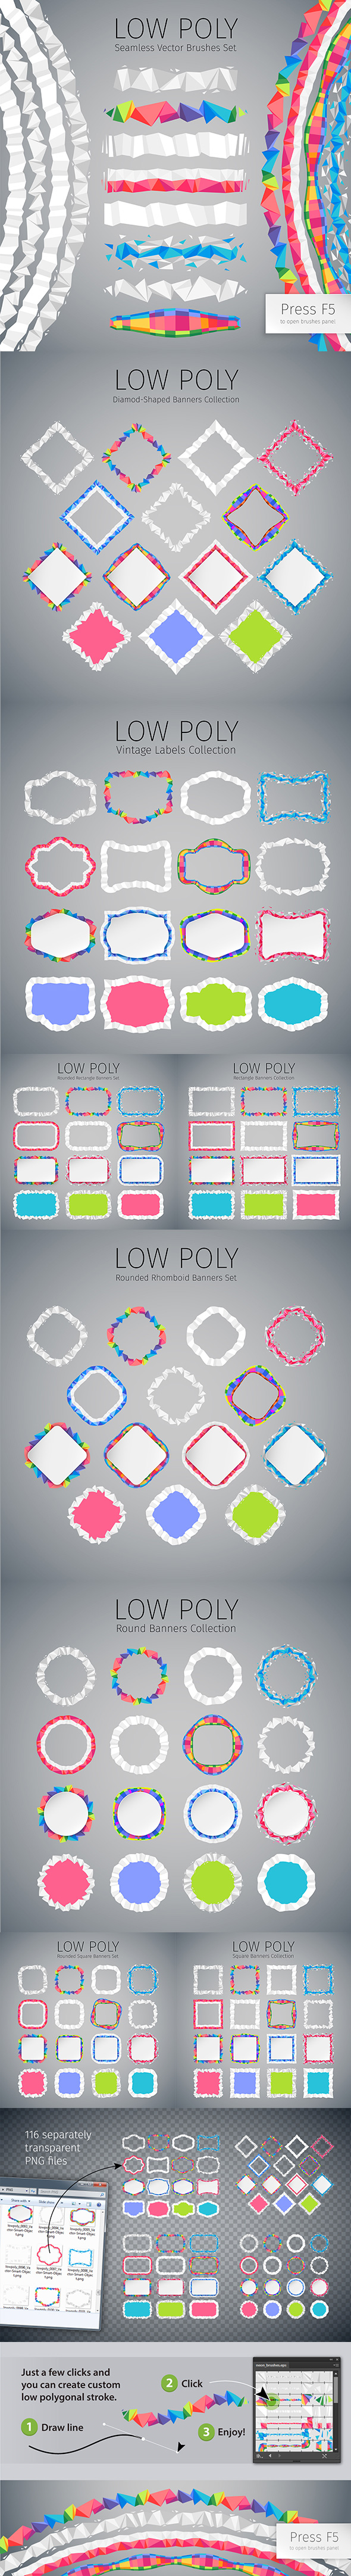 Low Poly Vector Seamless Brushes - Abstract Brushes